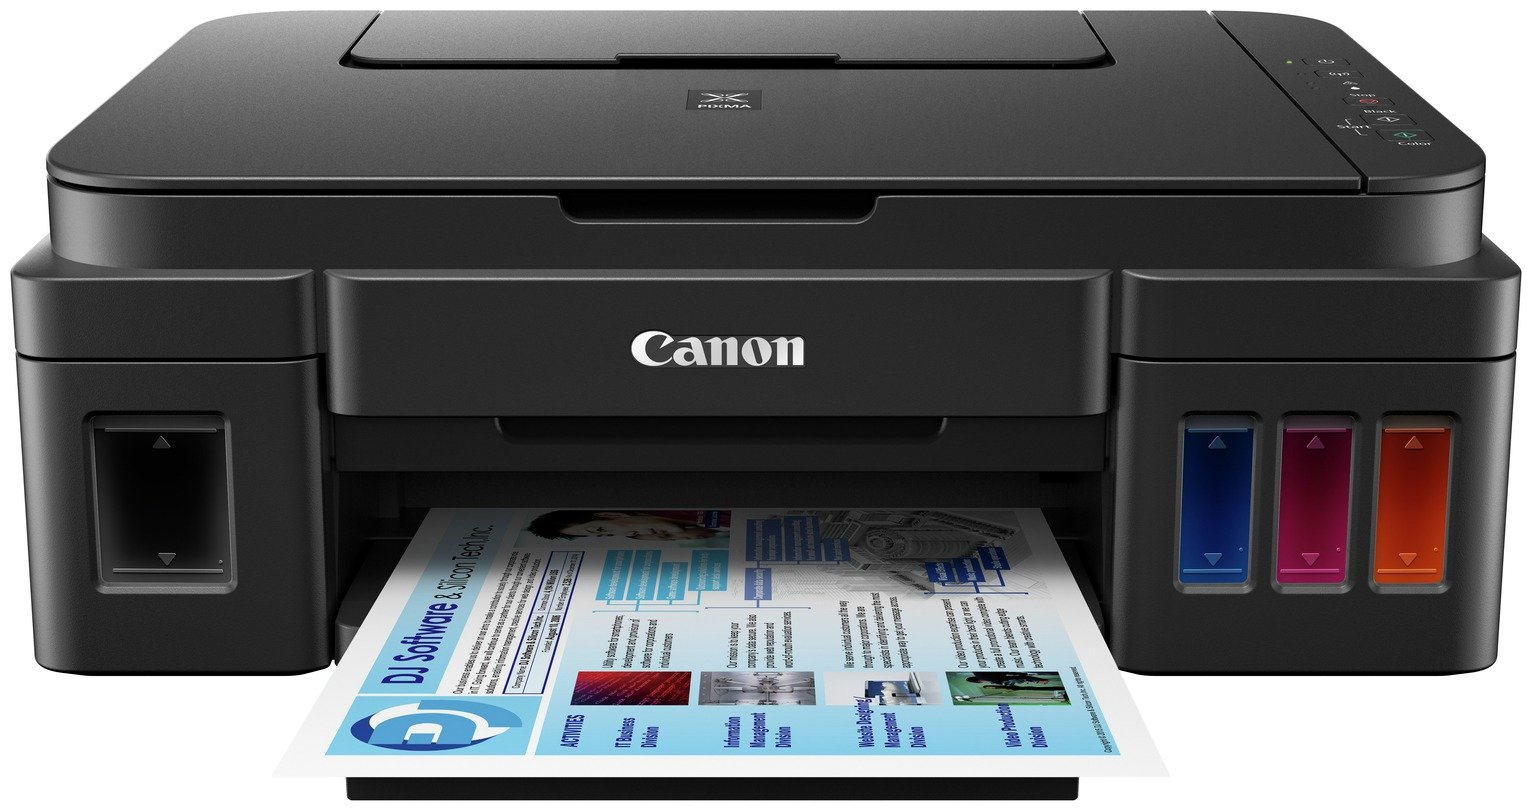 Canon G3501 3-in-1 Wireless Printer from Canon